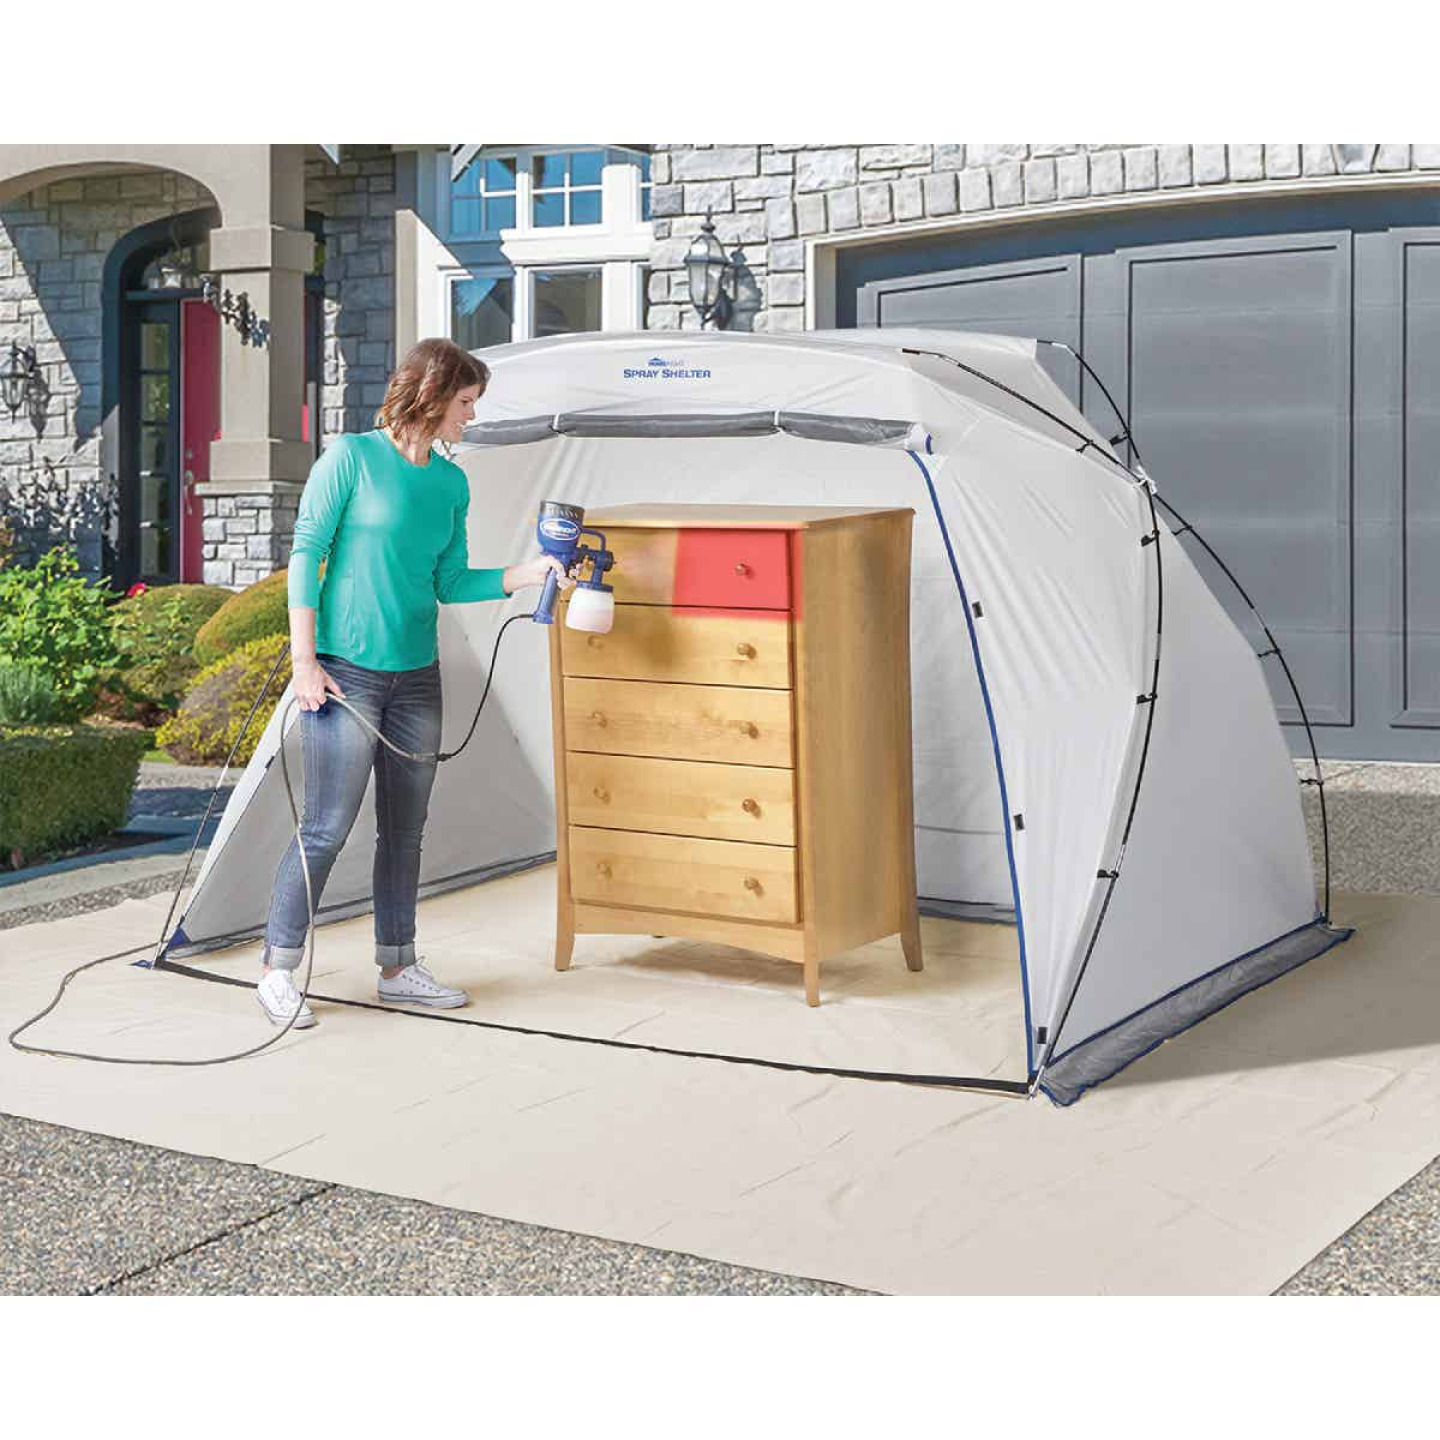 HomeRight 9 Ft. W. x 5.5 Ft. H. x 6 Ft. D. Large Portable Spray Shelter Image 2